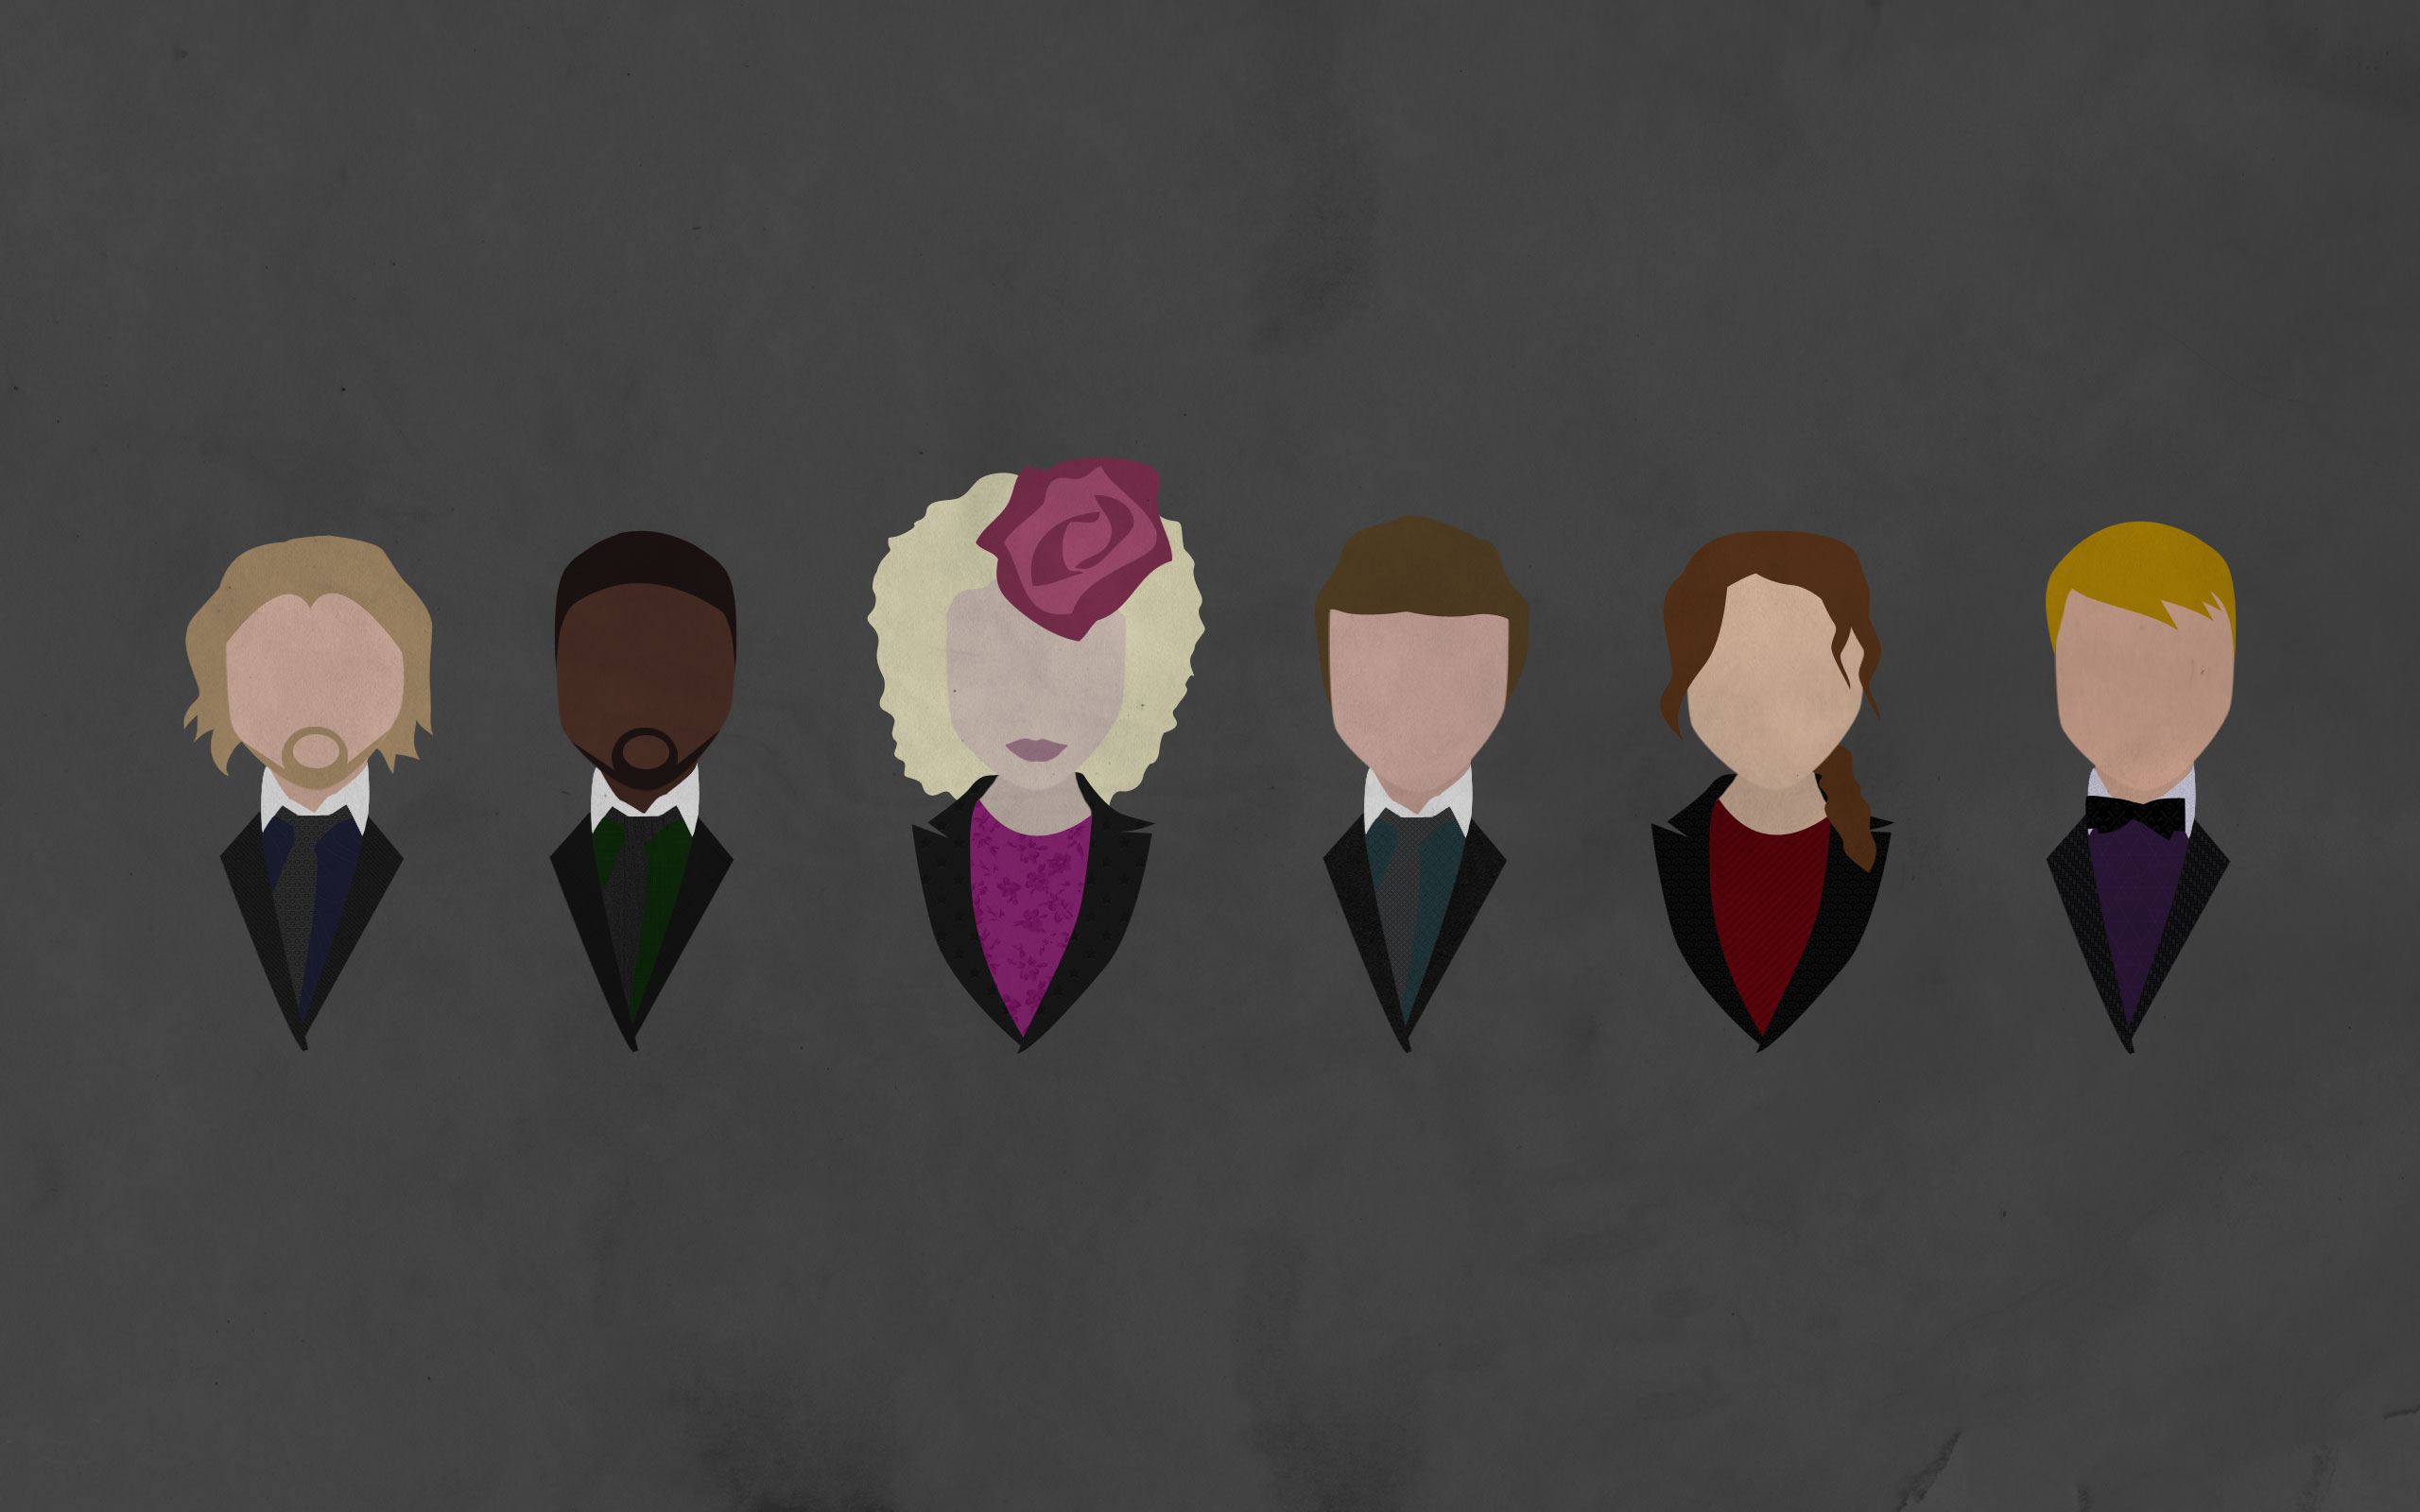 Hunger games computer wallpaper hd wallpapers blog the hunger games minimalistic wallpaper voltagebd Image collections